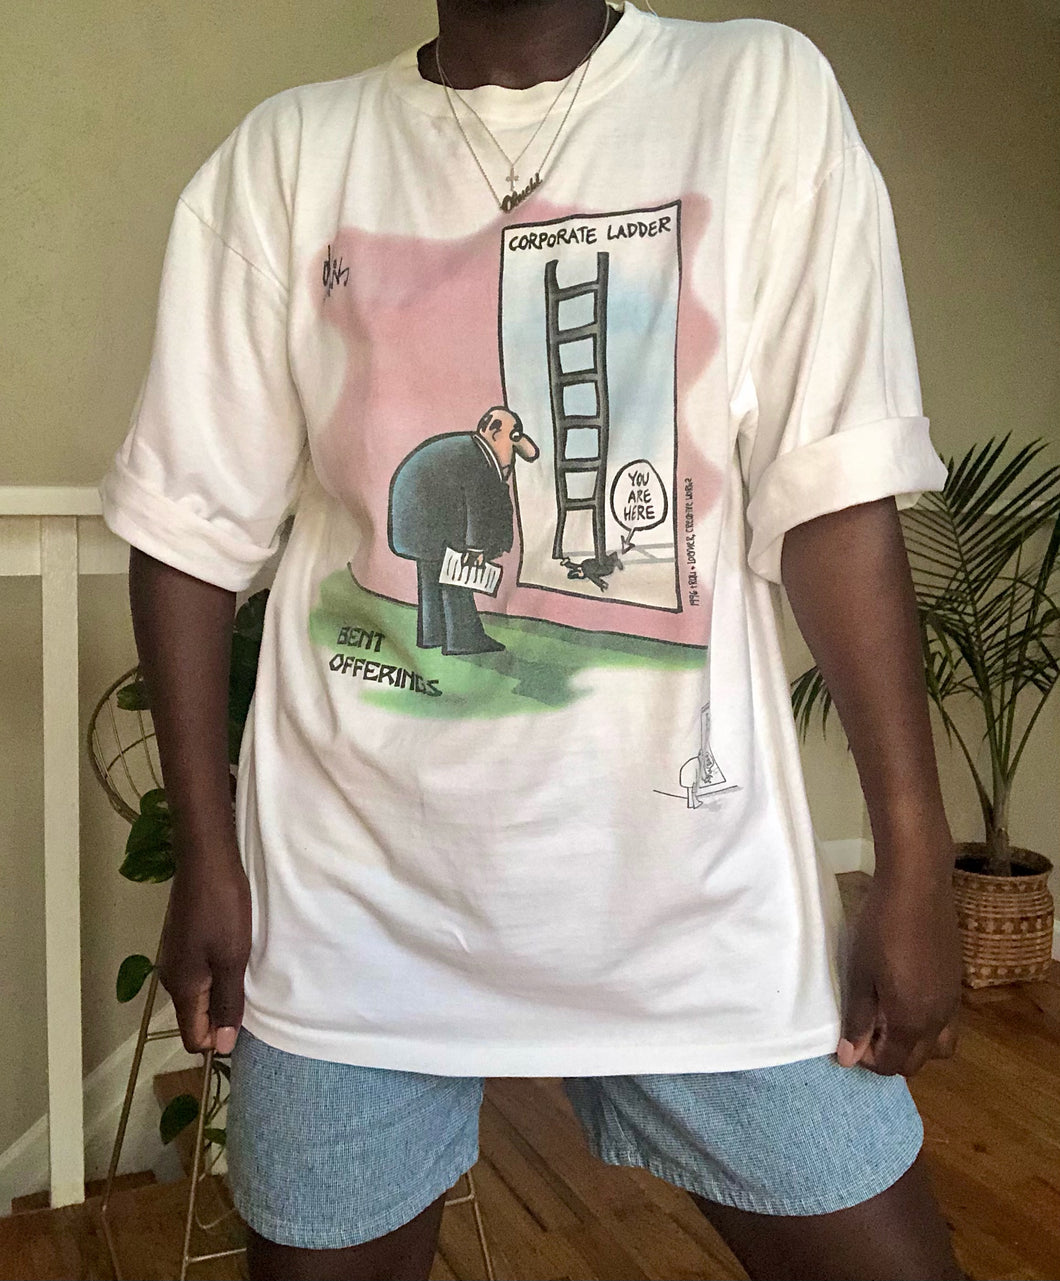 corporate ladder tee